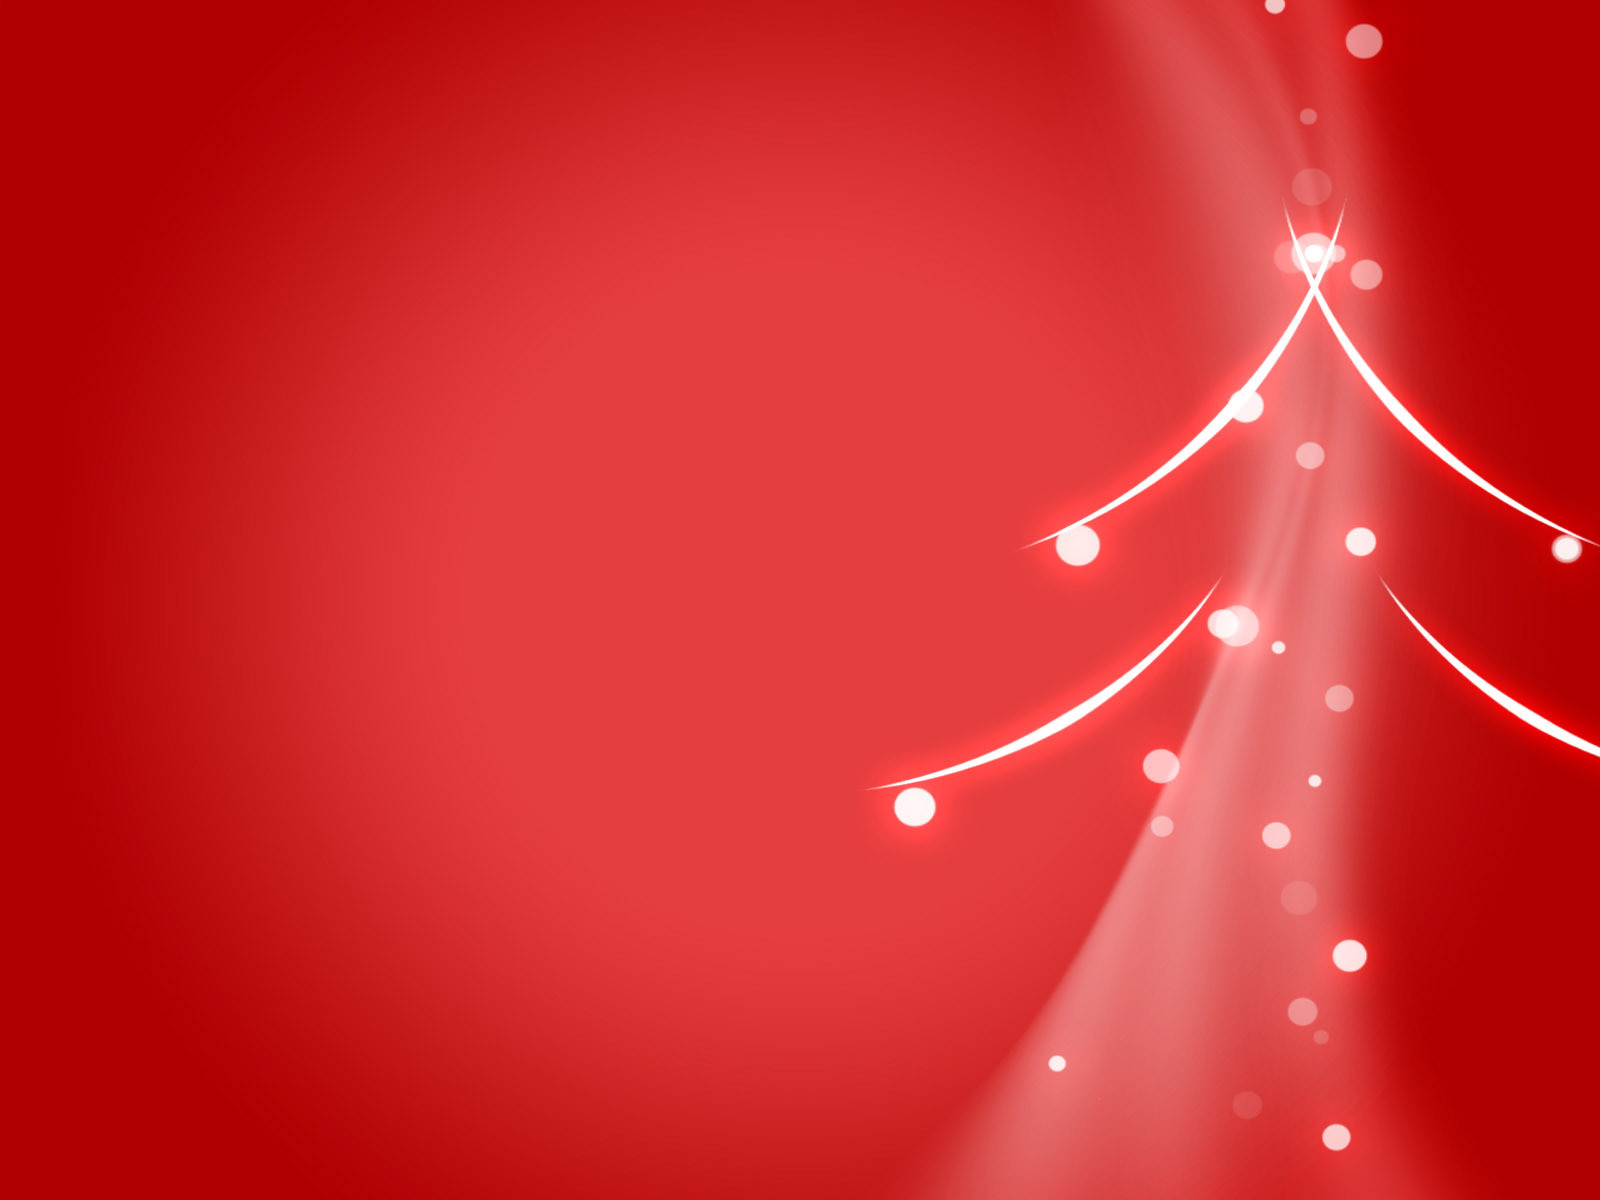 Red 2012 Christmas Tree PPT Backgrounds